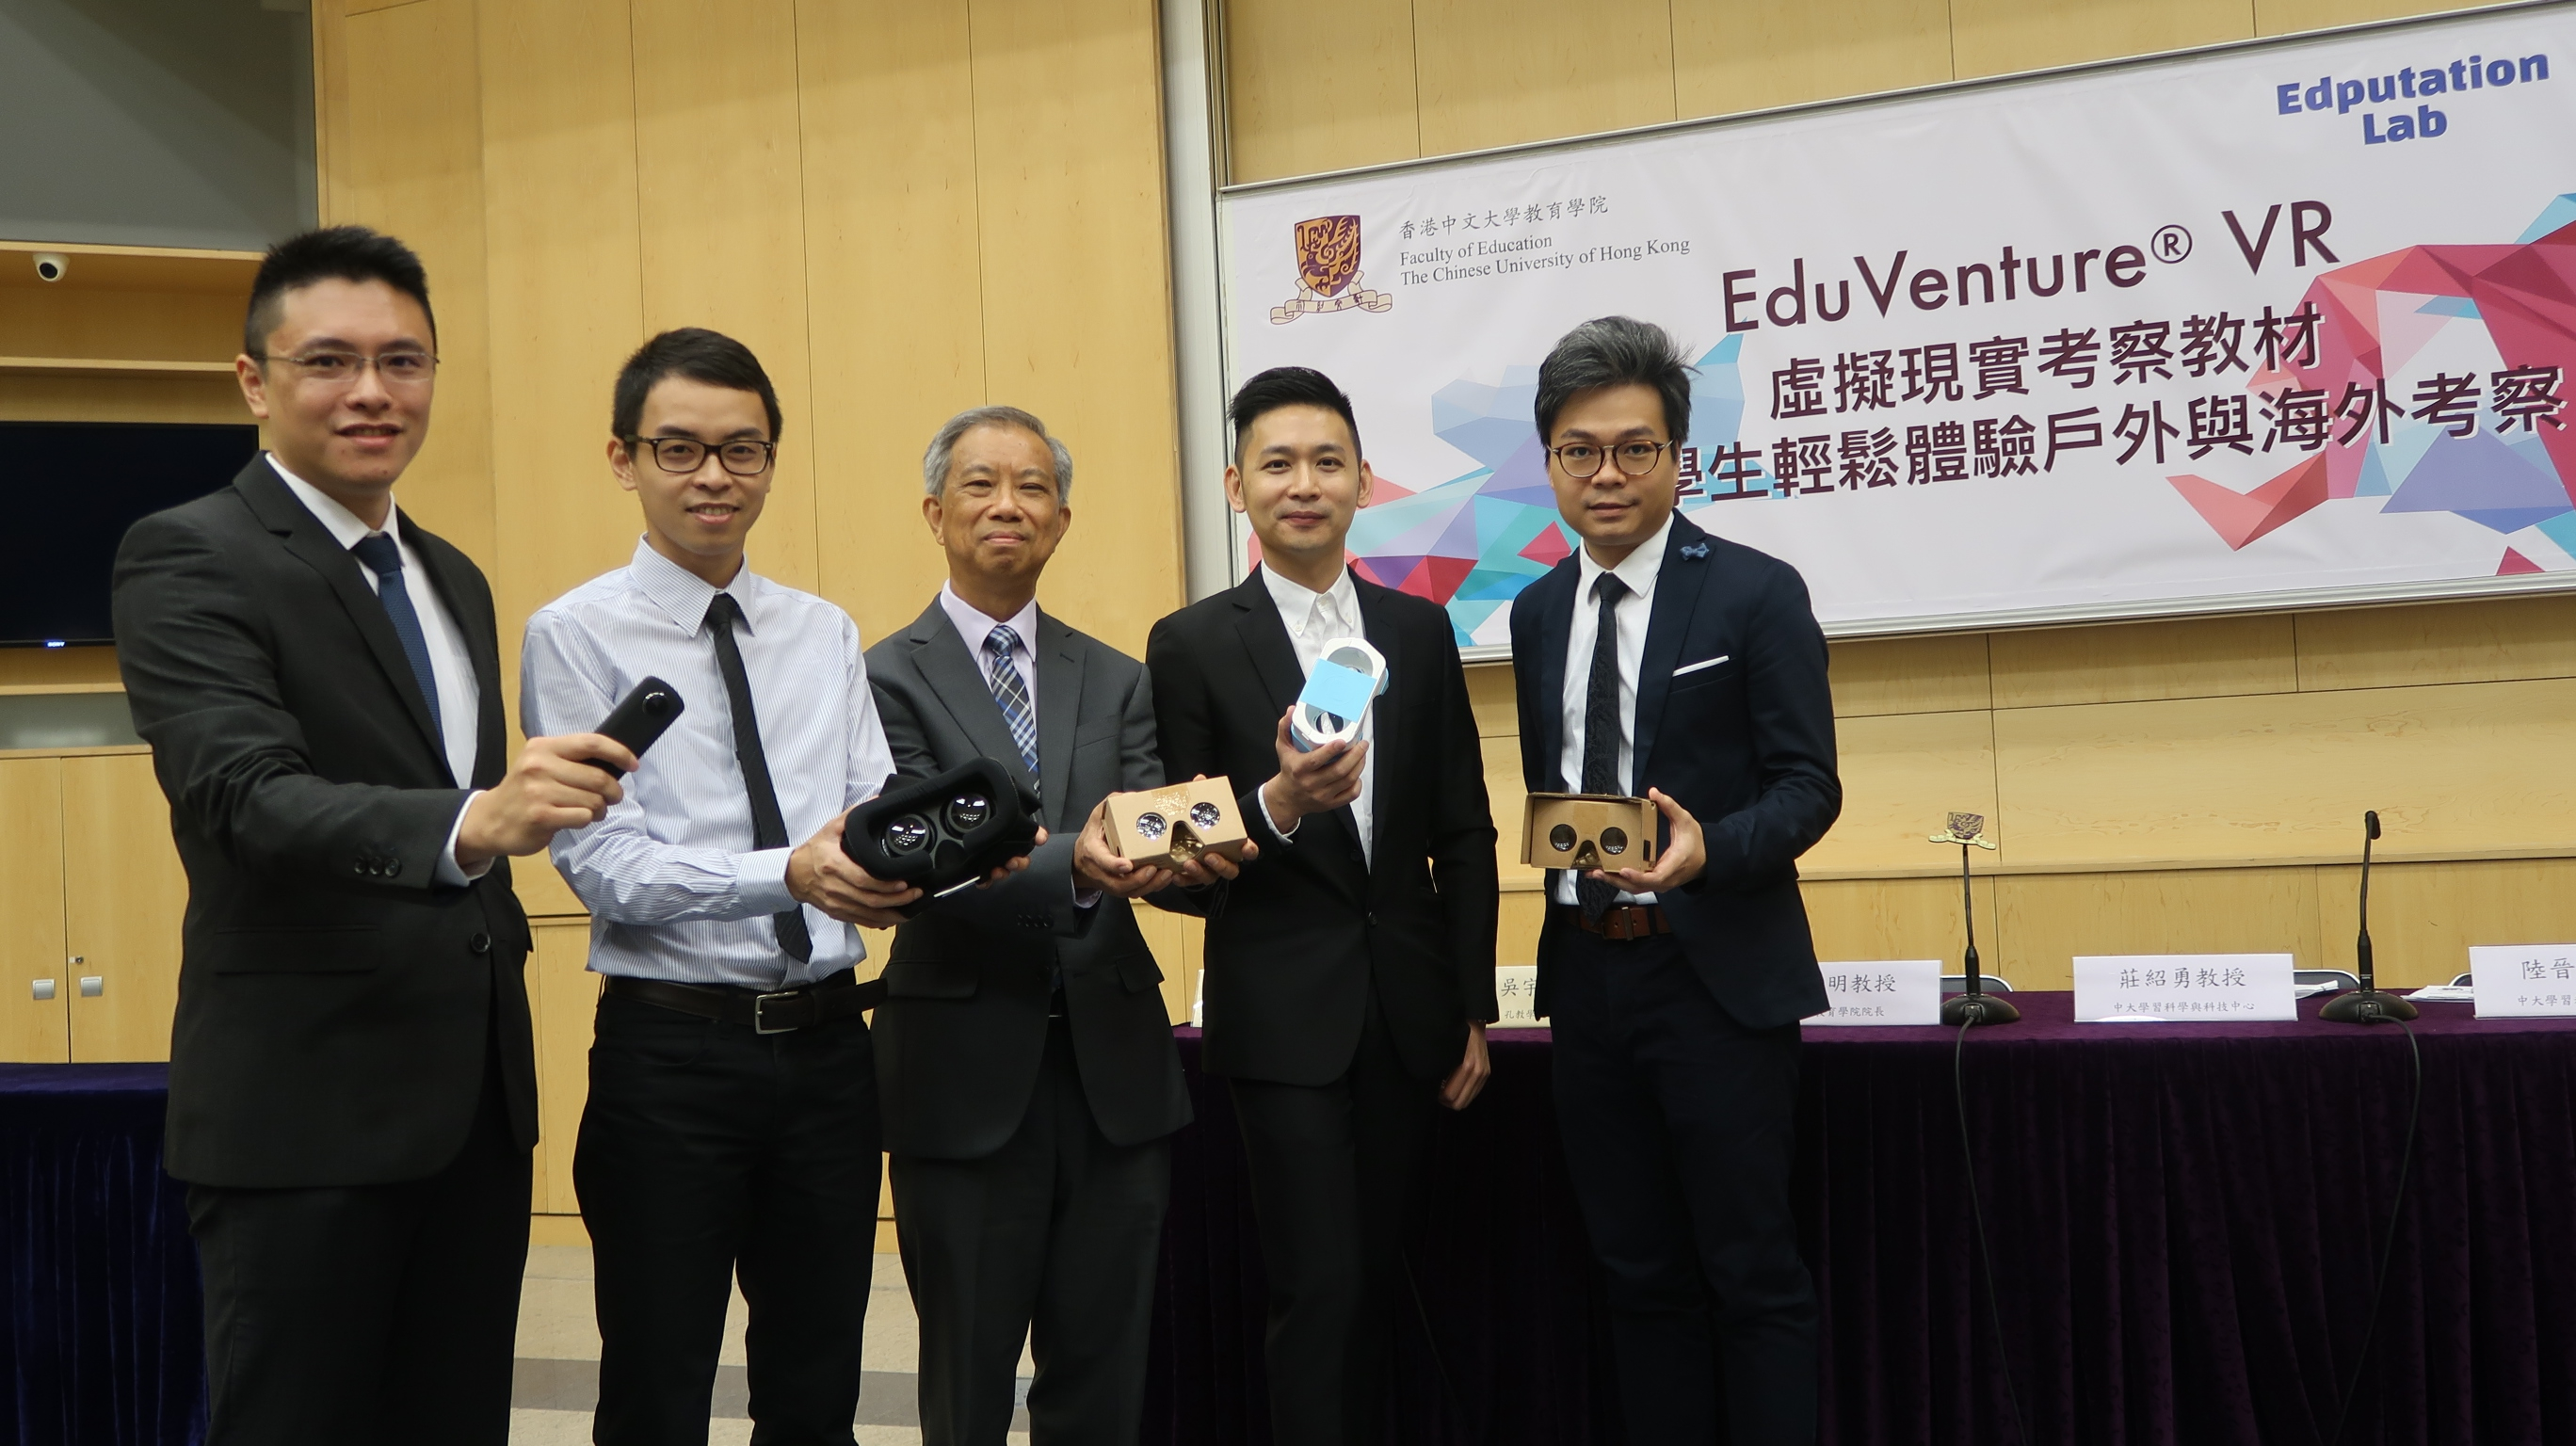 (From left) Mr. LEE Tin Man, teacher of SKH St Mary's Church Mok Hing Yiu College; Mr. NG Yu Kit, teacher of Confucian Tai Shing Primary School; Prof. LEUNG Seung Ming Alvin, Dean of the Faculty of Education, CUHK; Prof. JONG Siu Yung Morris, Centre for Learning Sciences and Technologies, Department of Curriculum and Instruction, CUHK; and Mr. LUK Tsun Hin Eric, Educational Development Officer (IT), Centre for Learning Sciences and Technologies, CUHK.